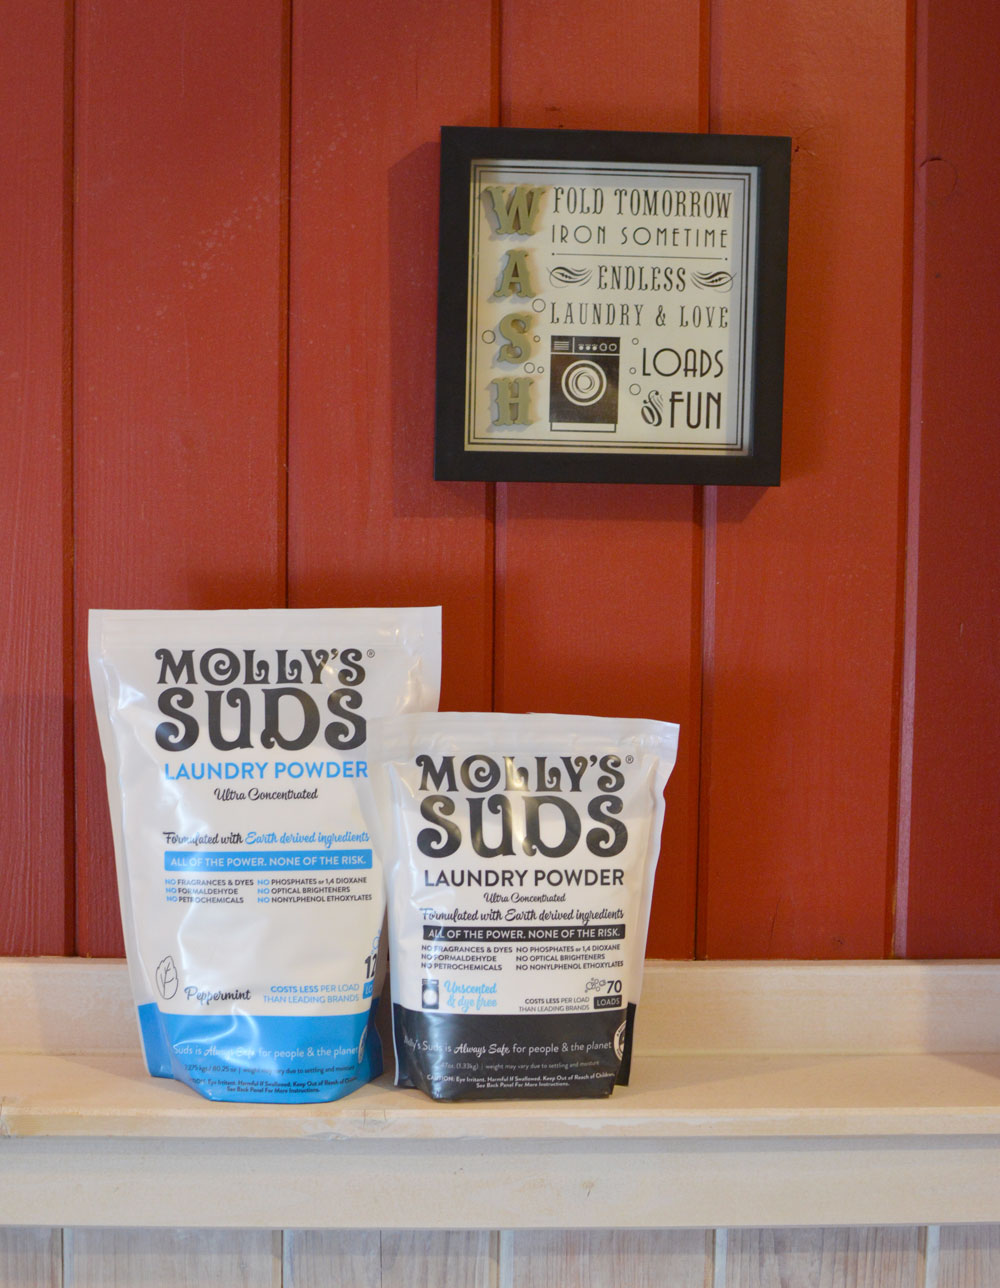 Molly's Suds laundry detergent is safe and effective for the whole family